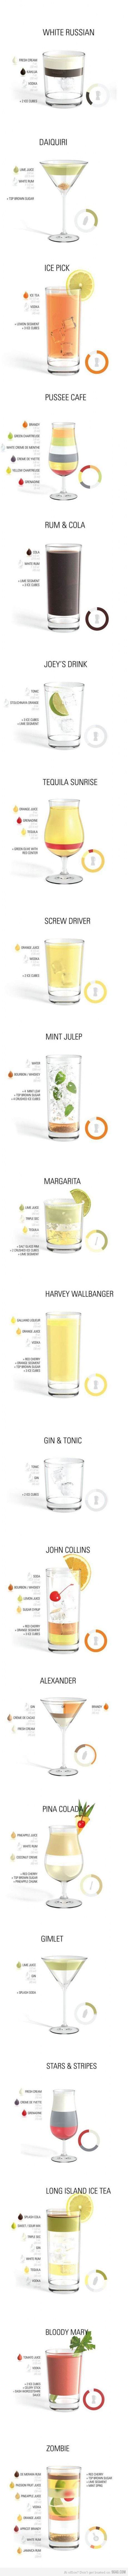 Guide to Mixing the Best Cocktails  #cocktails